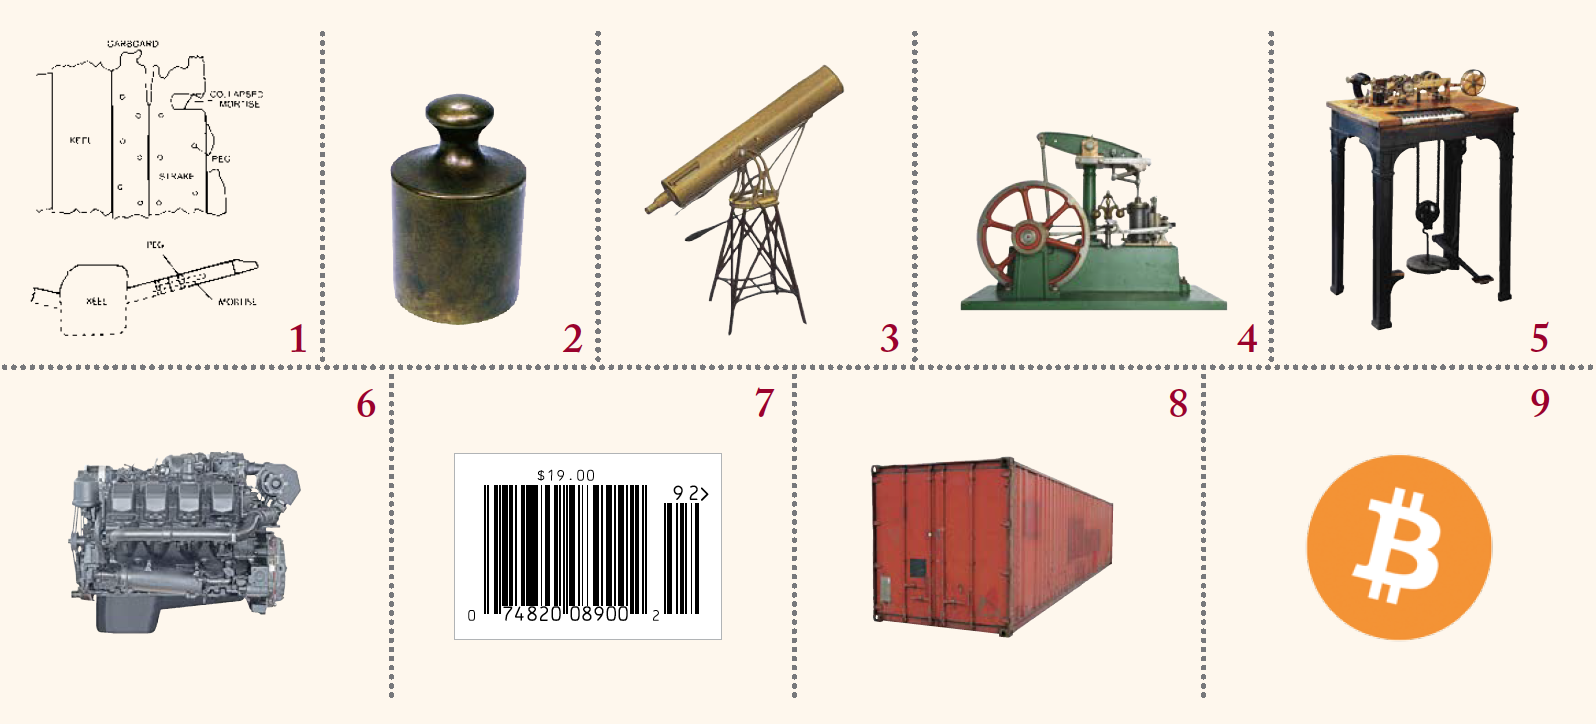 A series of images, each labeled with a number. 1 a diagram of a type of ship construction. 2 a weight. 3 a telescope. 4 a steam engine. 5 a telegraph. 6 an engine. 7 a barcode. 8 a shipping container. 9 the symbol for bitcoin.